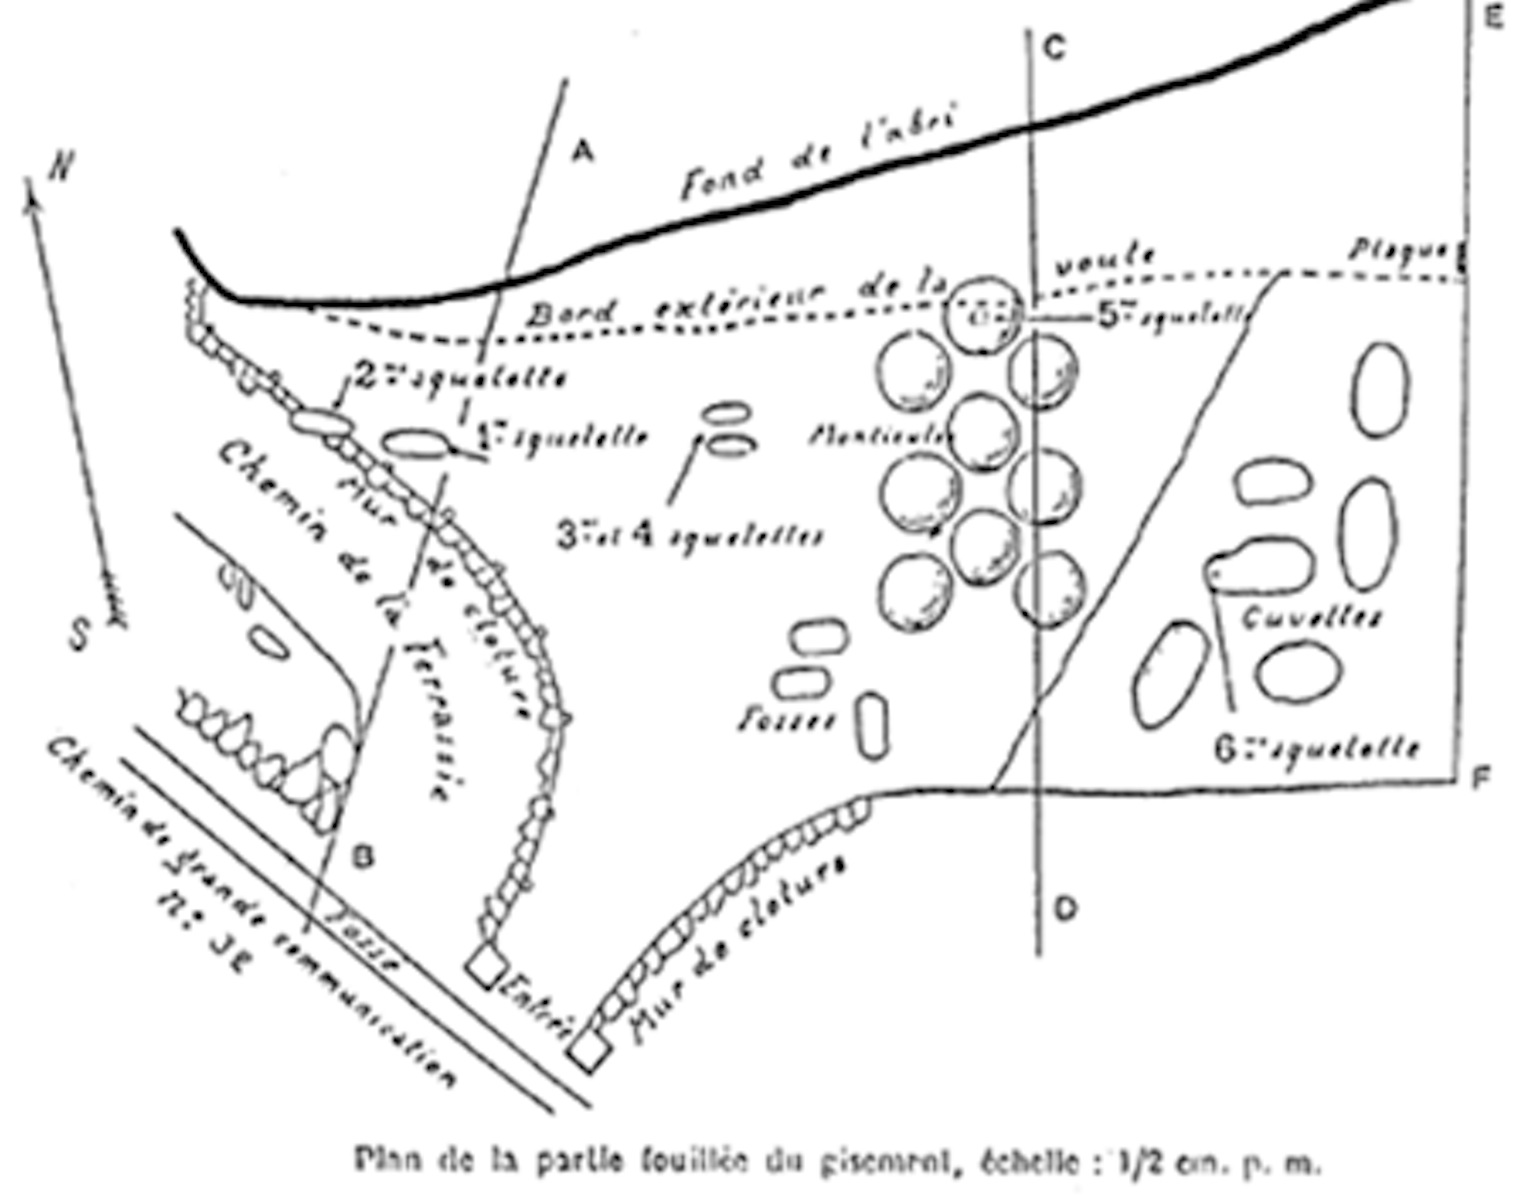 La Ferrasie, original plan of this 70,000 year old ritual site showing cliff edge across the top and orientation of the graves then excavated